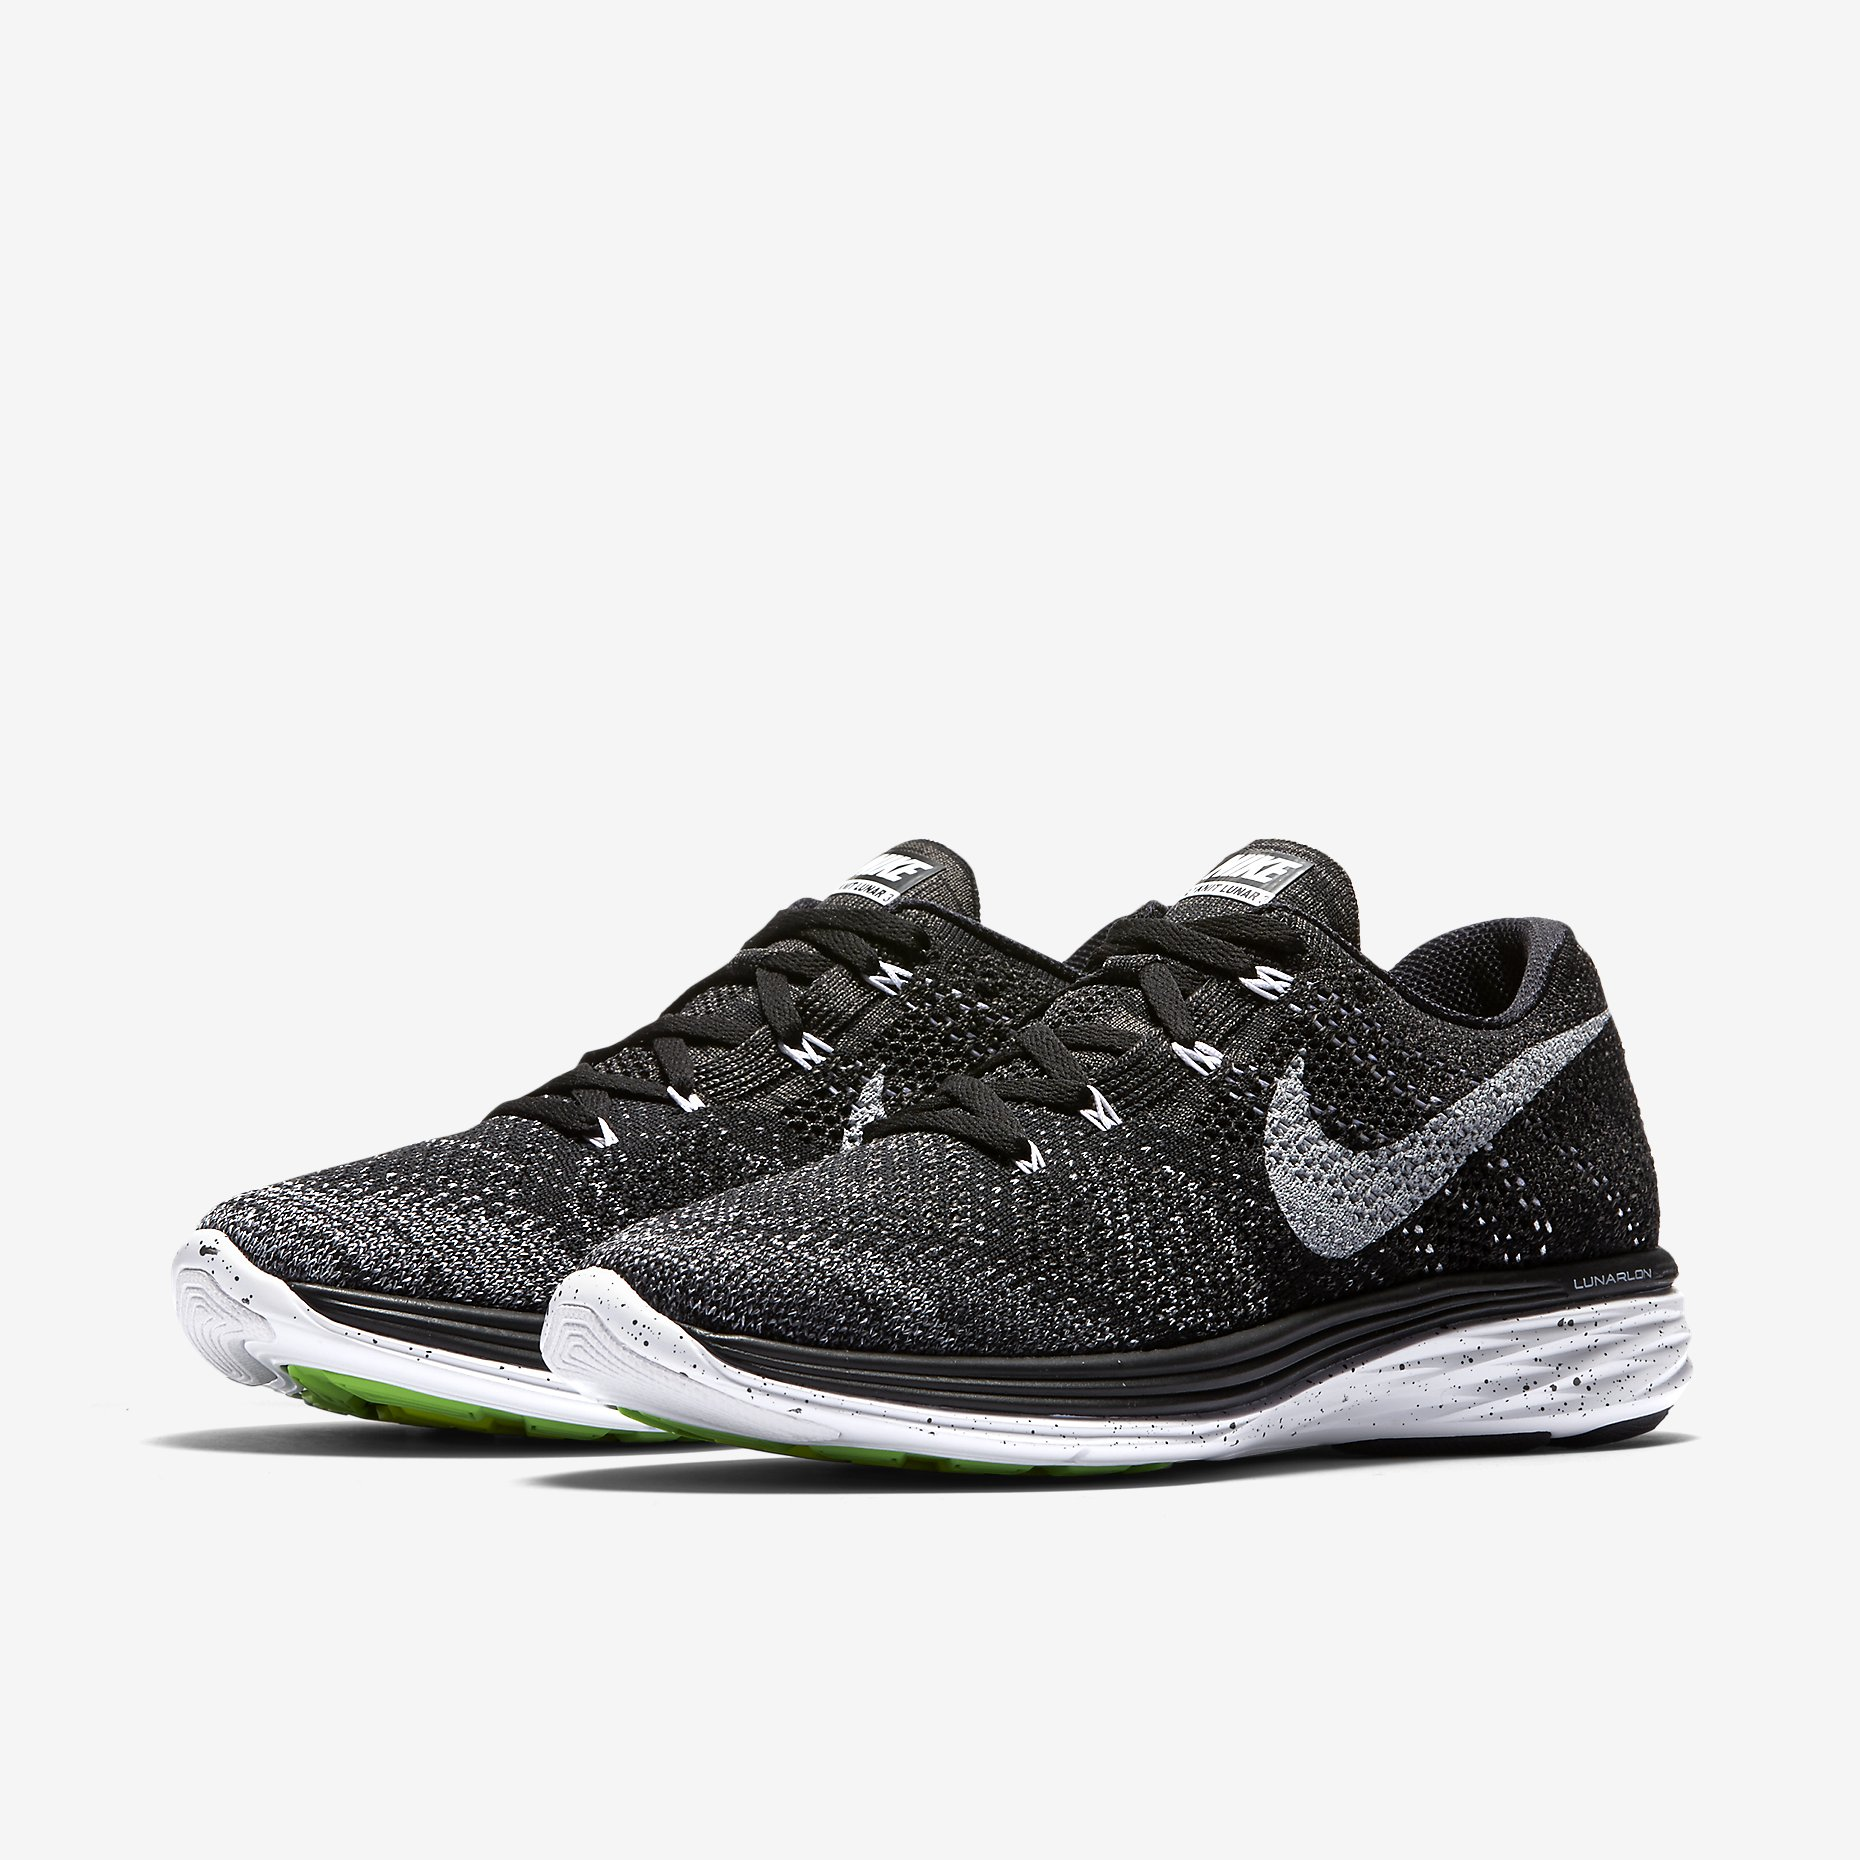 nike-com-clearance-final-sale-2016ss-more-20-percent-off-until-20160807